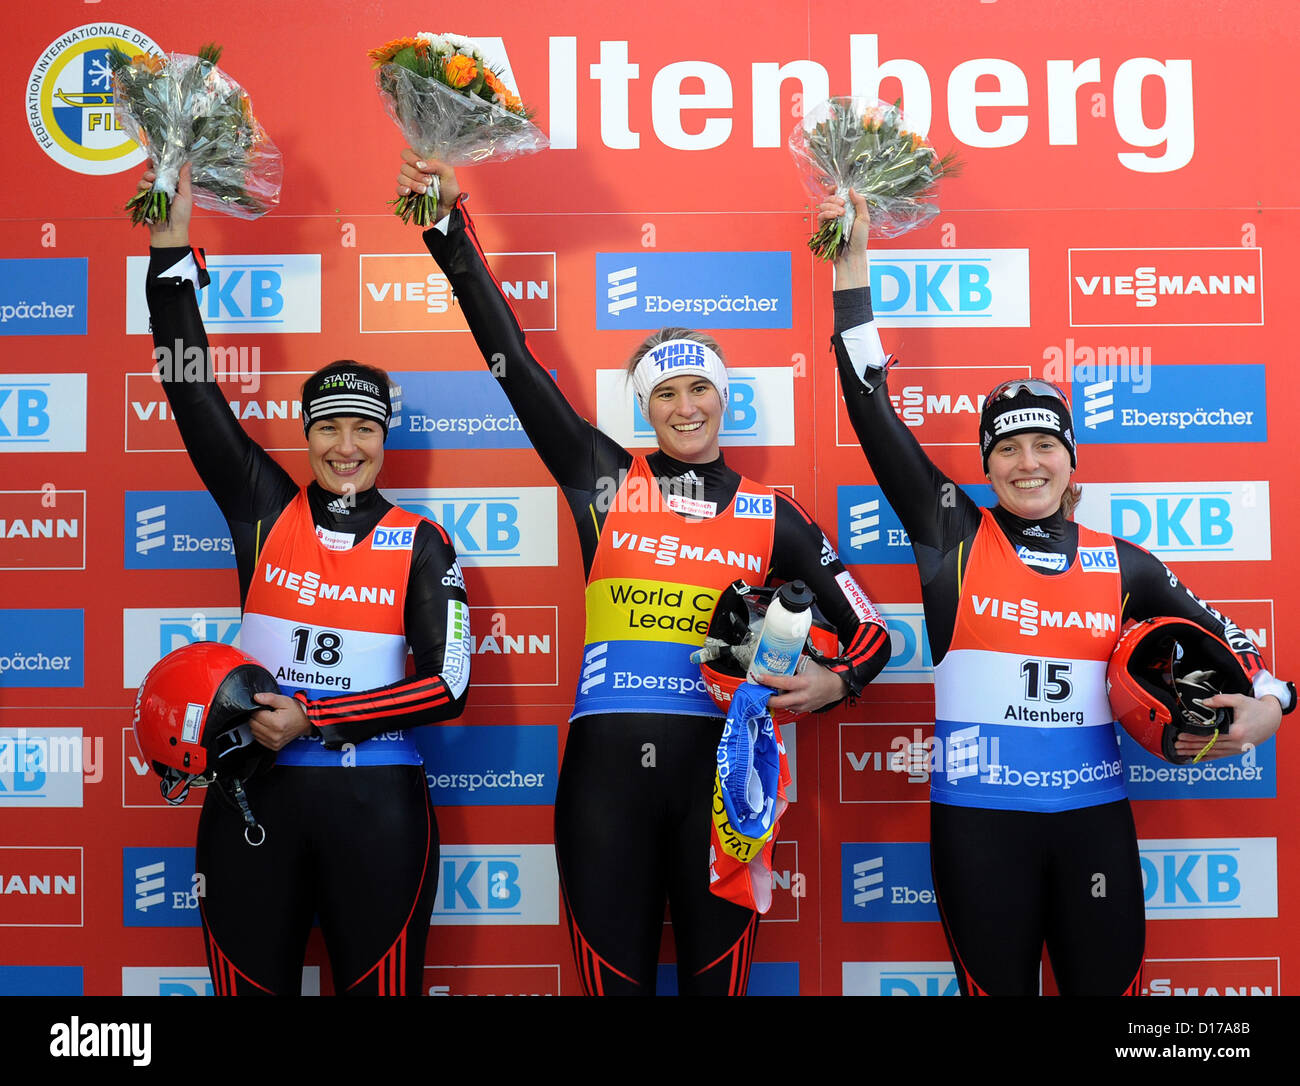 German lugers Anke Wischnewski (2nd place, L-R), Natalie Geisenberger (1st place) and Corinna Martini (3rd place) - Stock Image